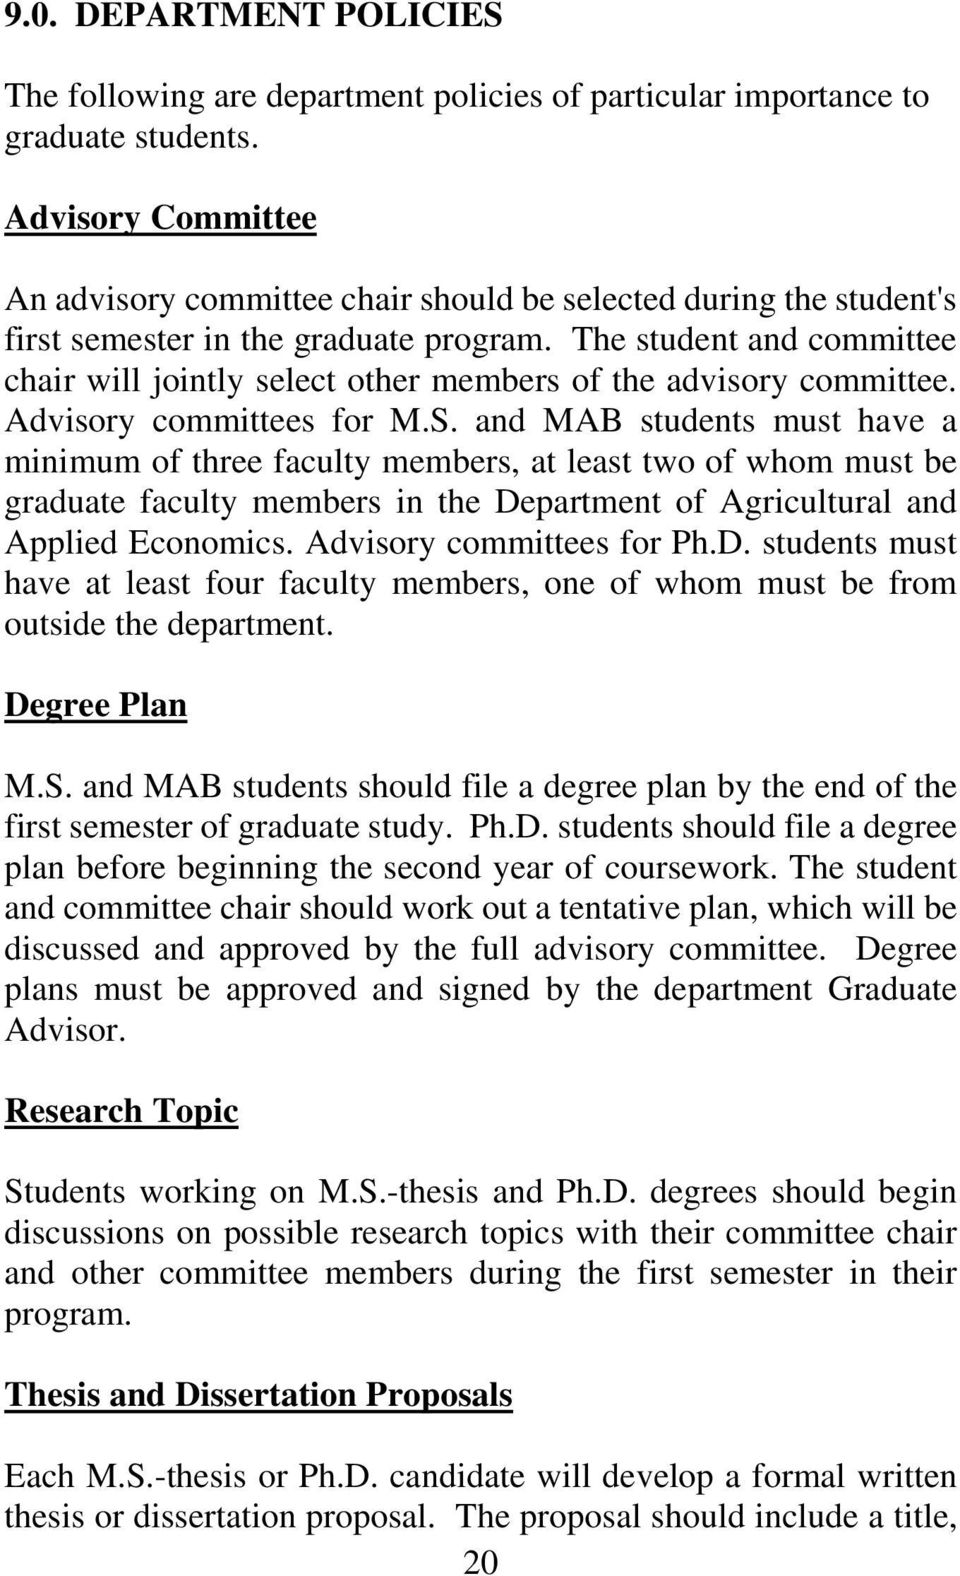 The student and committee chair will jointly select other members of the advisory committee. Advisory committees for M.S.